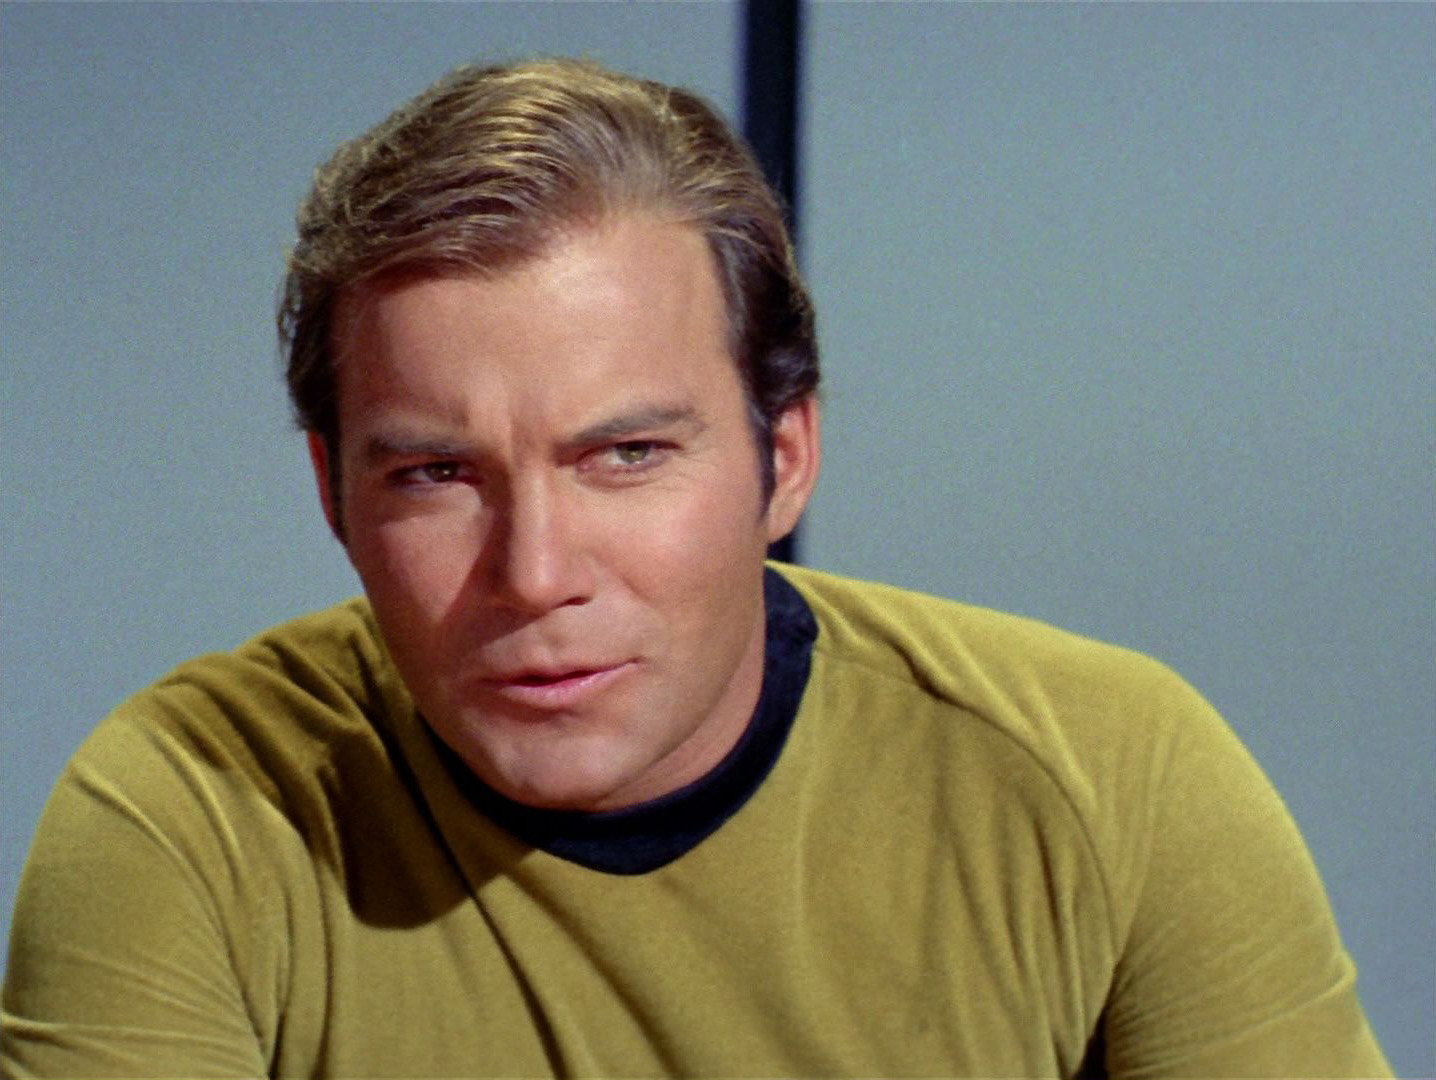 Shatner39s Toupee QuotThe Deadly Yearsquot An HD Study